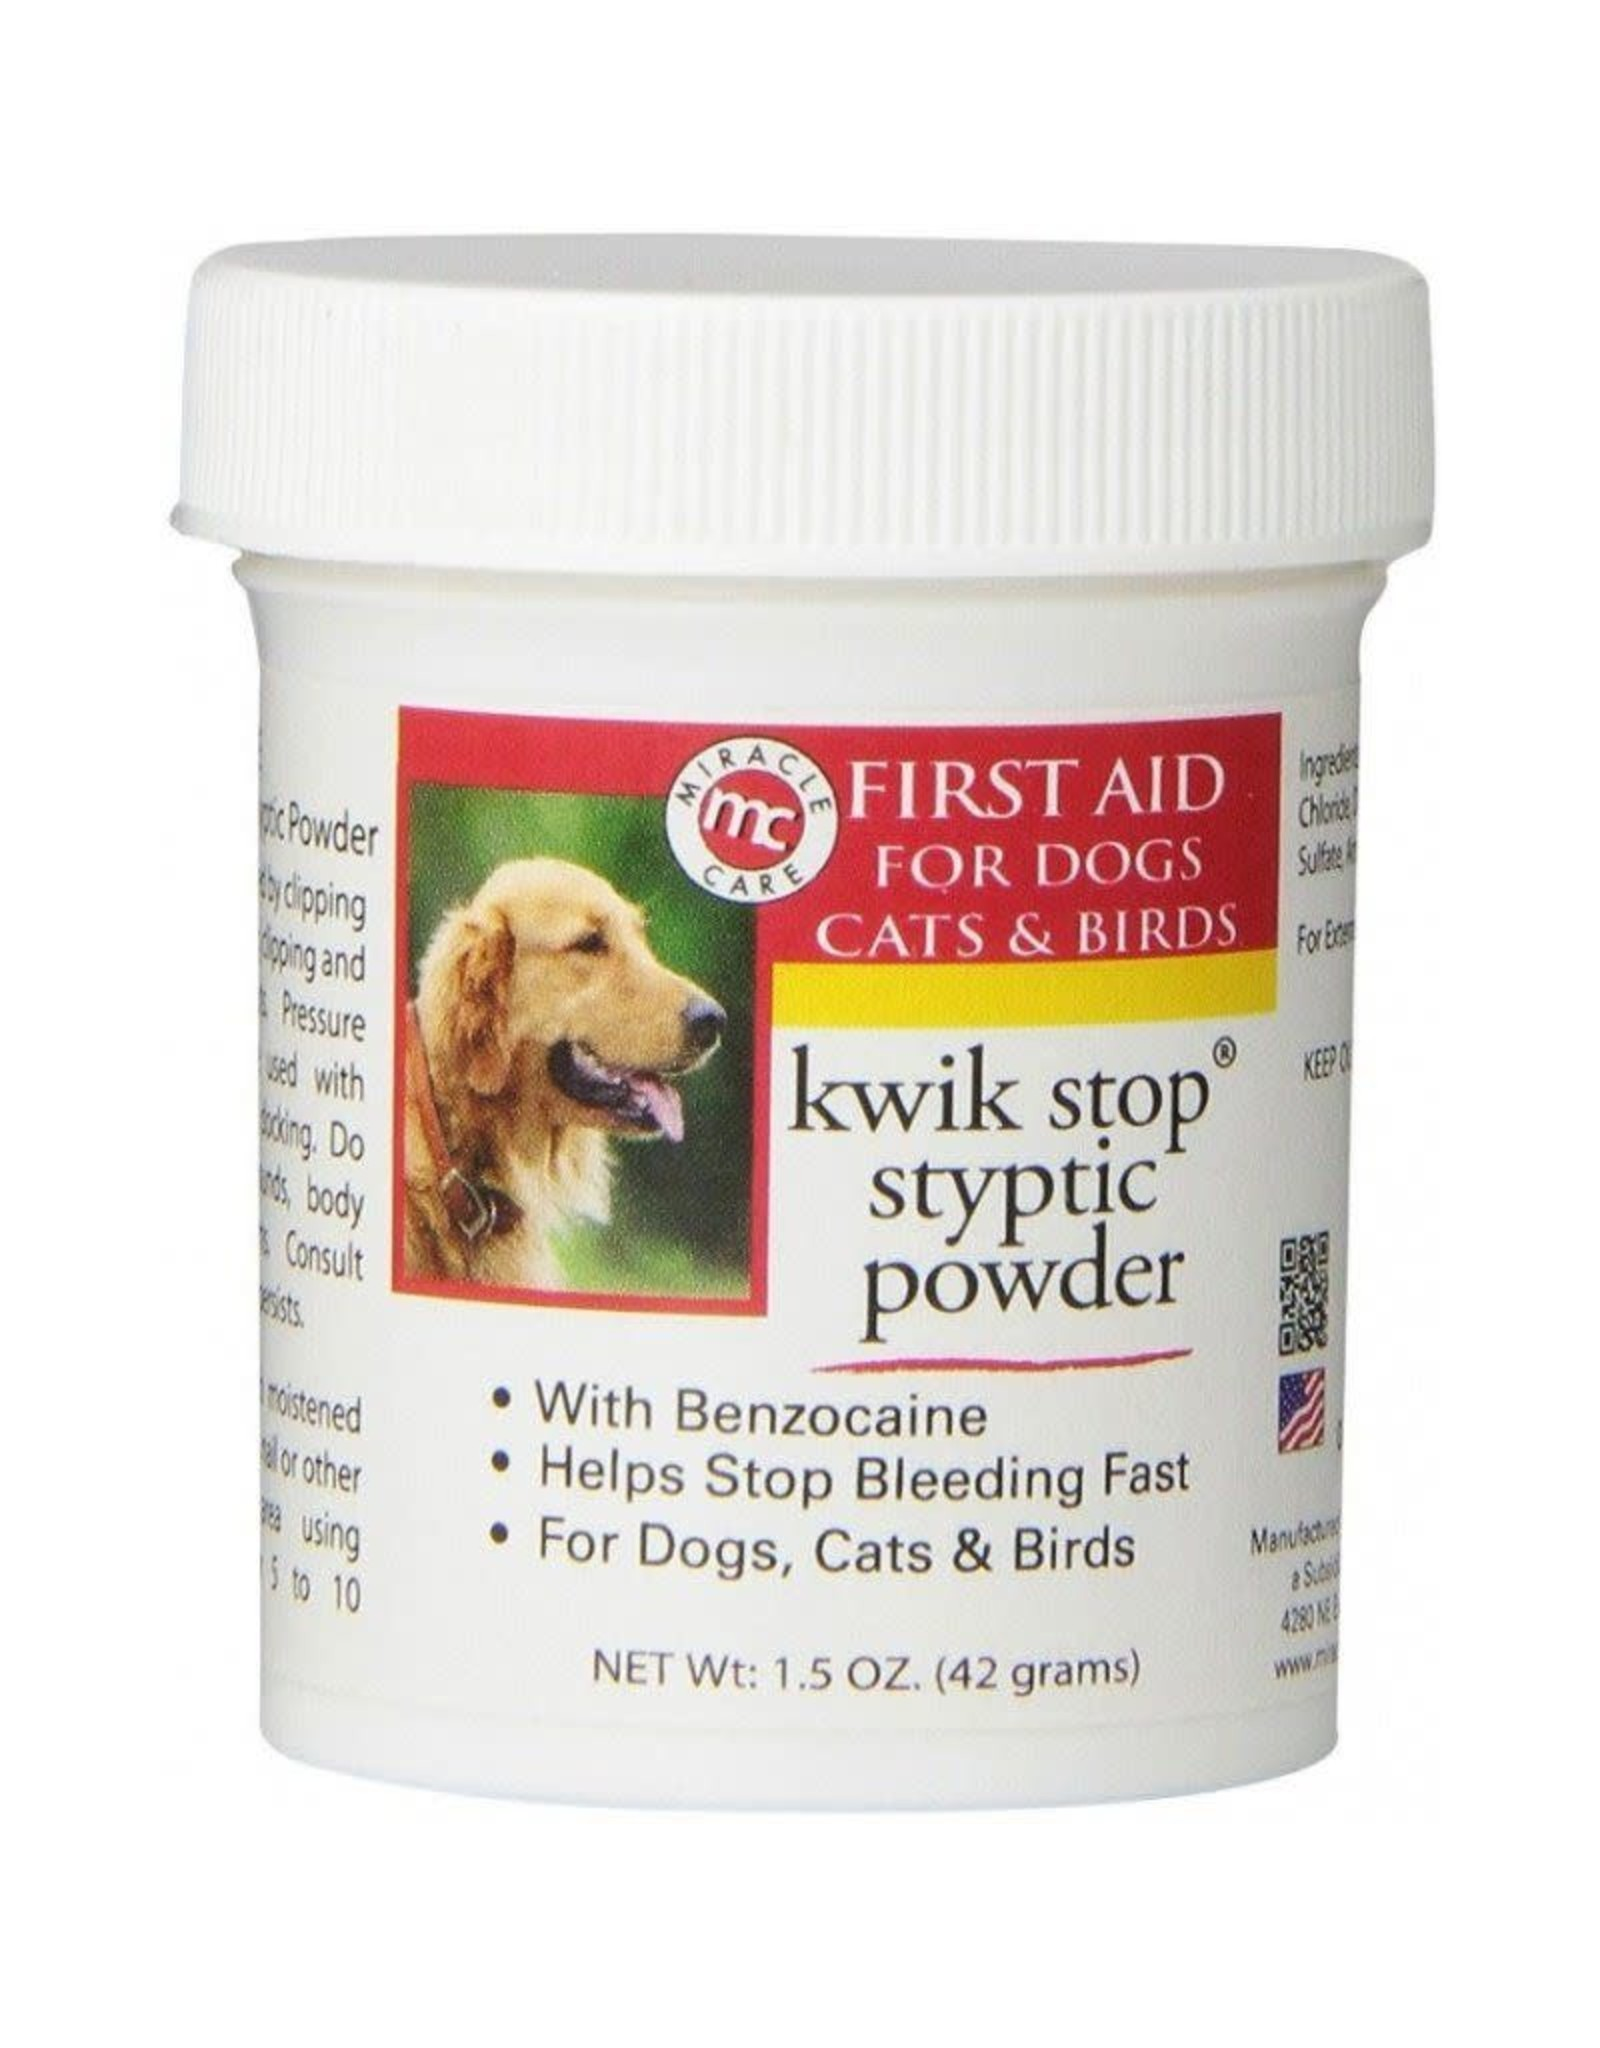 MIRACLECORP PRODUCTS KWIK STOP STYPTIC PWDR 1.5Z